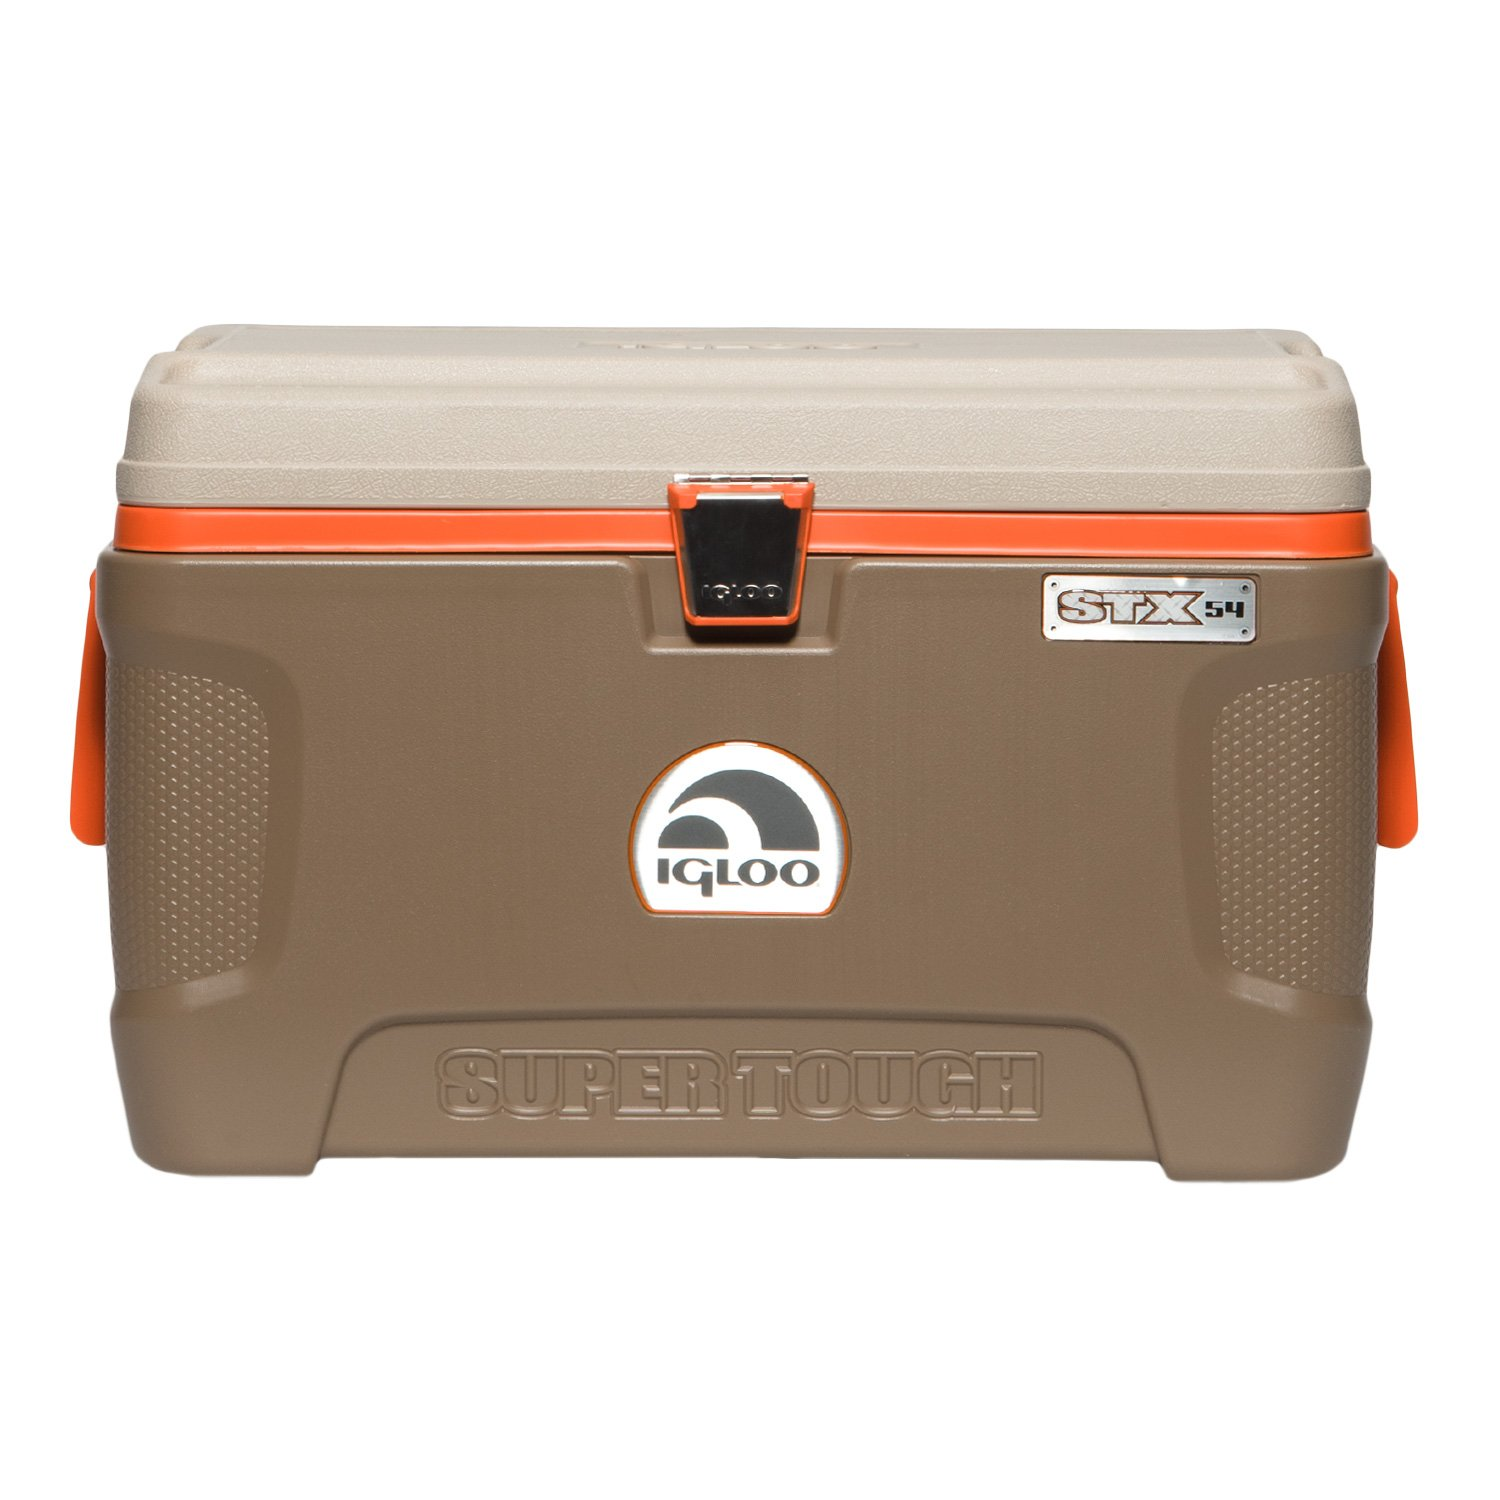 Igloo Super Tough Stx Sportsman Coolers 54-Quart 10